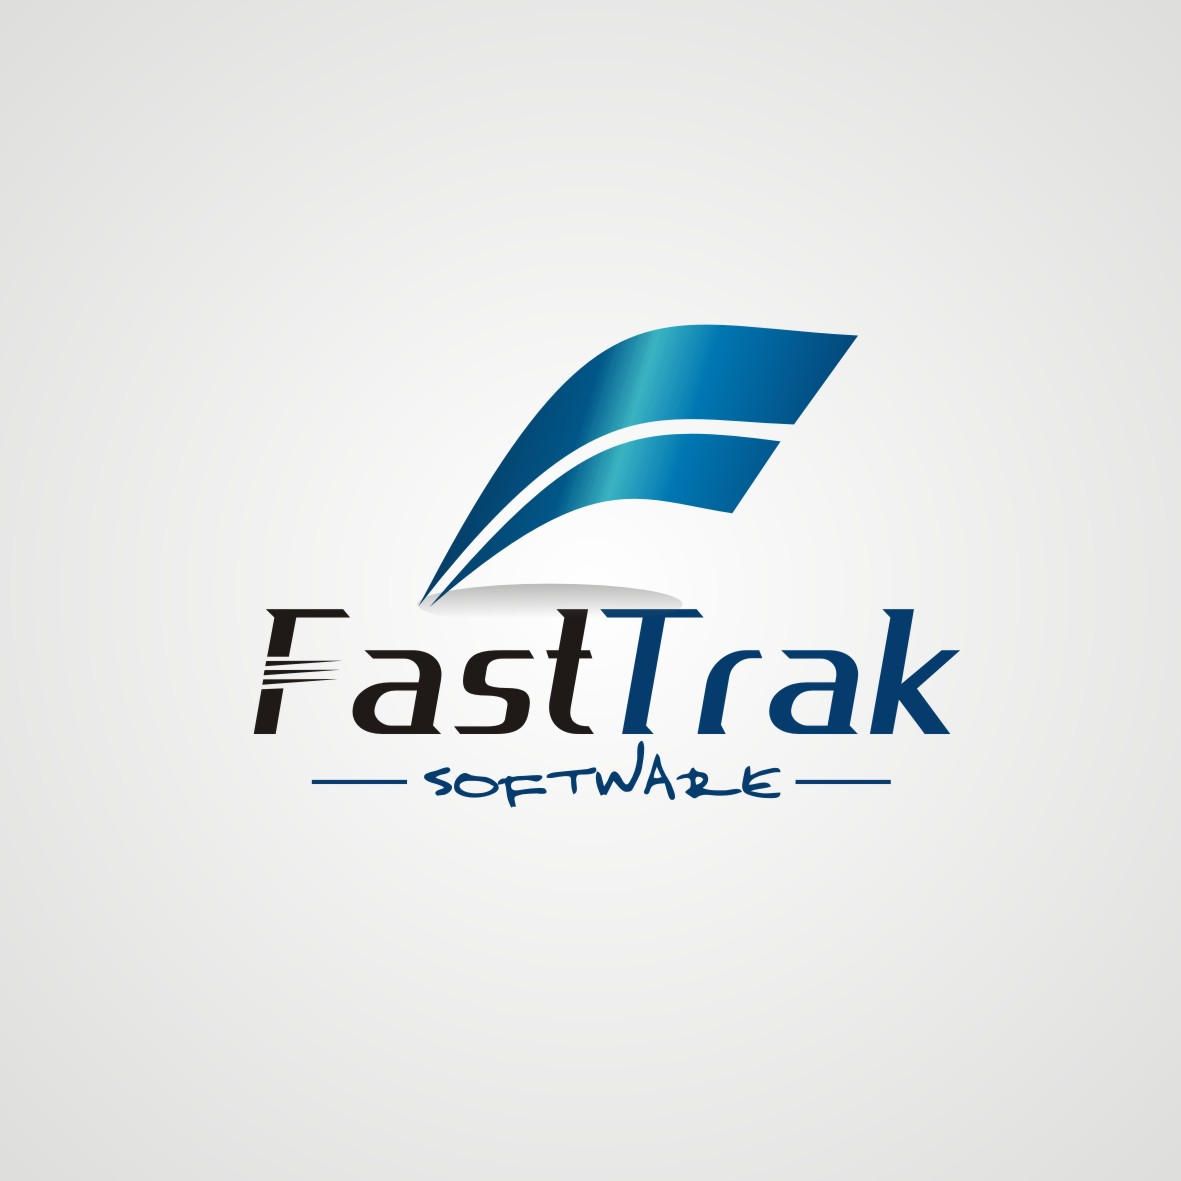 Logo Design by arteo_design - Entry No. 51 in the Logo Design Contest Fast Trak Software Logo Design.